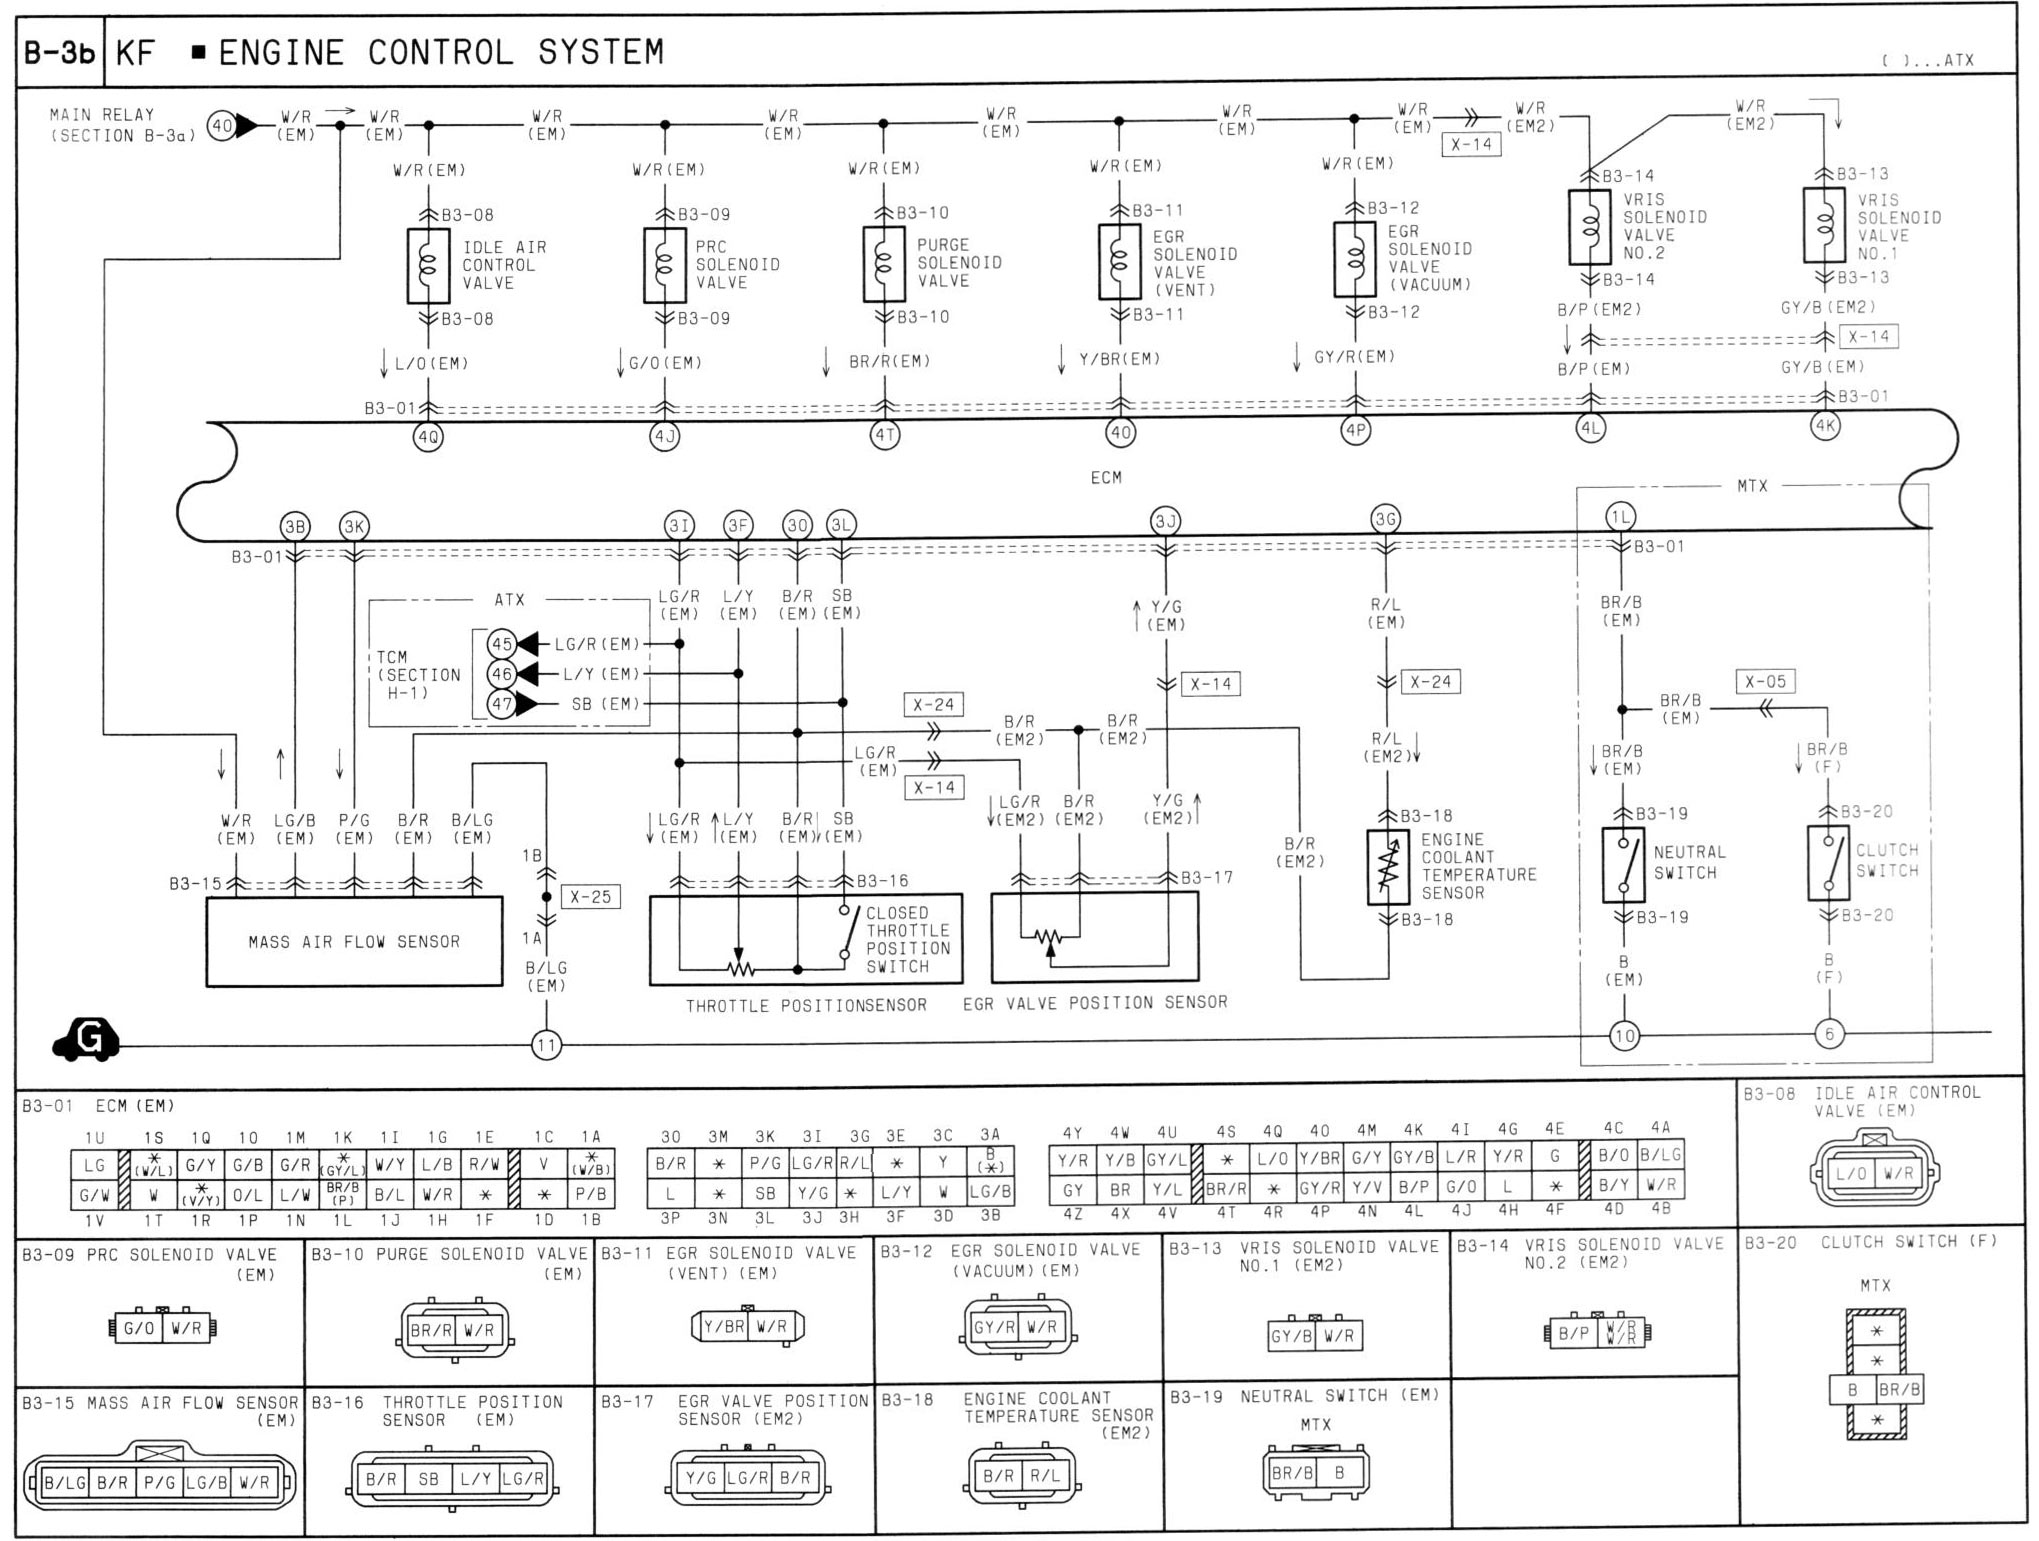 B 3b_KF_ECS ford laser ecu diagram 100 images ford f250 wiring diagram pl 40 wiring diagram at nearapp.co